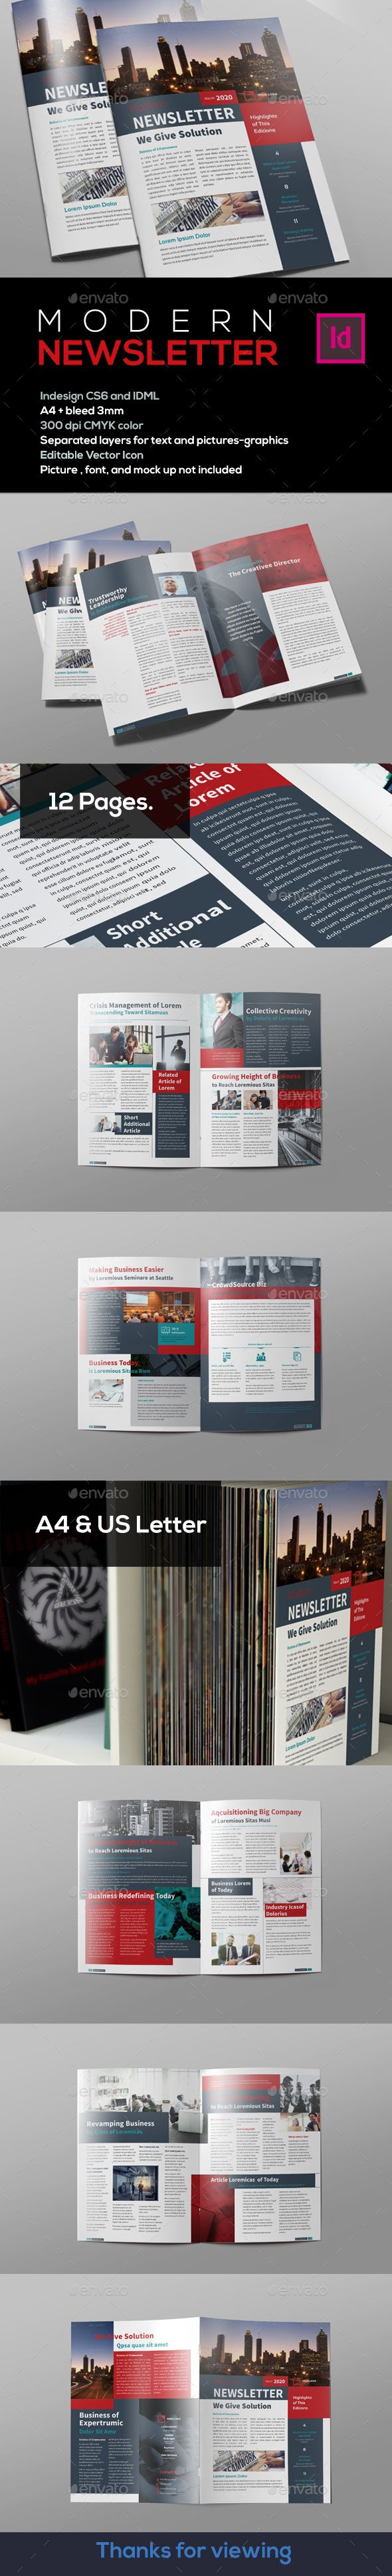 #Modern #Newsletter - Newsletters Print #Templates Download here: https://graphicriver.net/item/modern-newsletter/19207857?ref=alena994